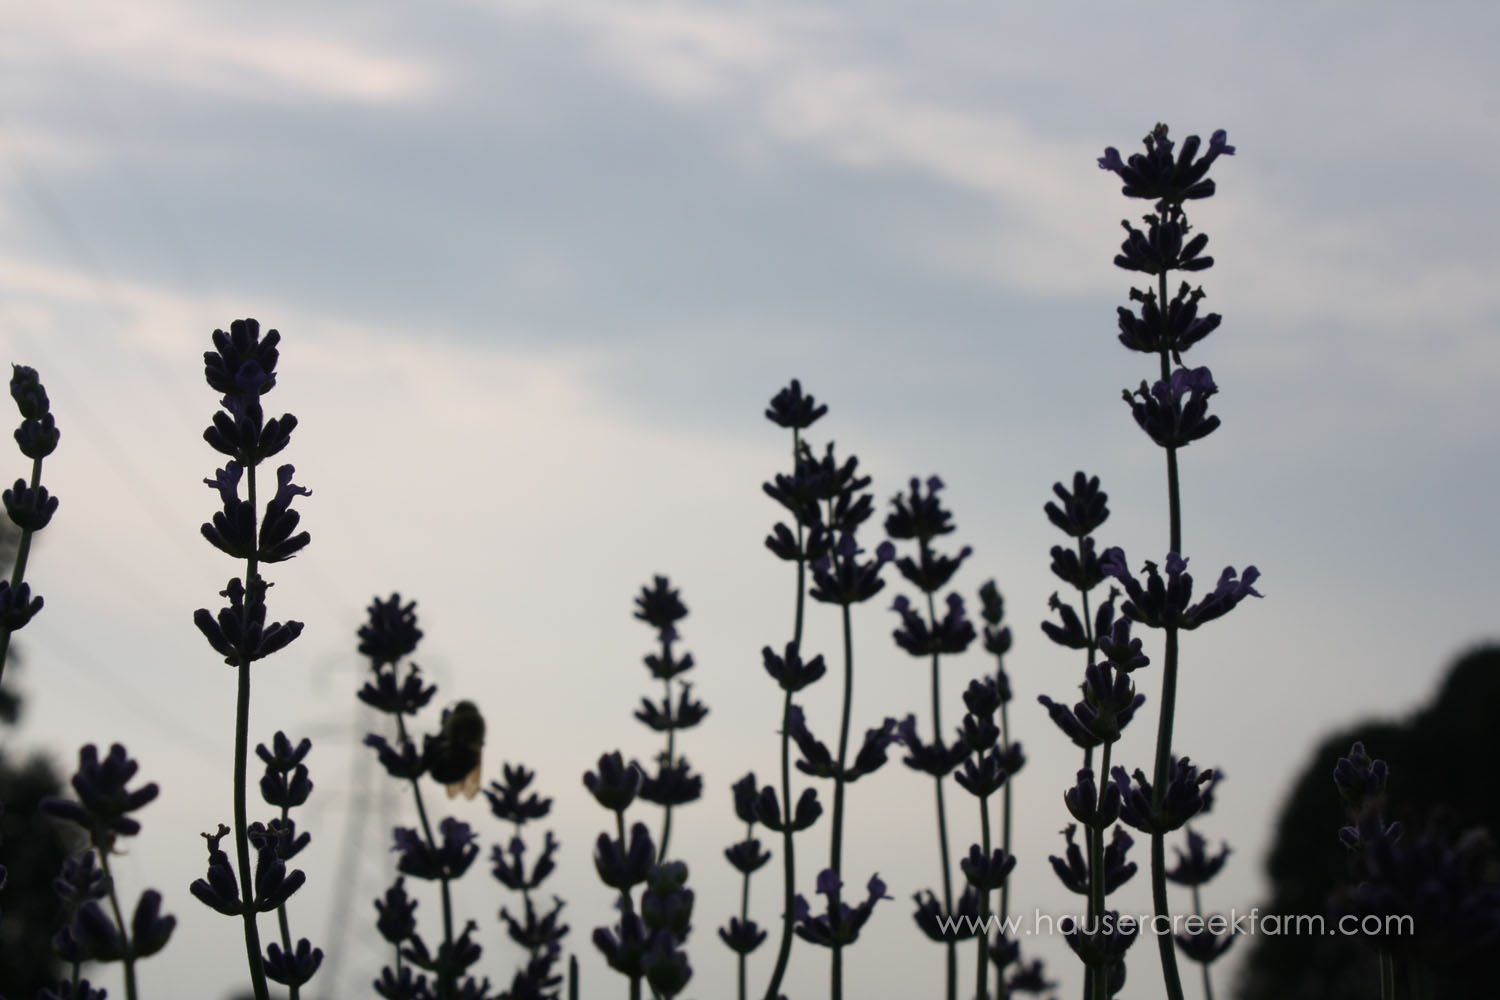 close-up-sillhouette-of-lavender-plants-growing-at-hauser-creek-farm-IMG_9185.jpg